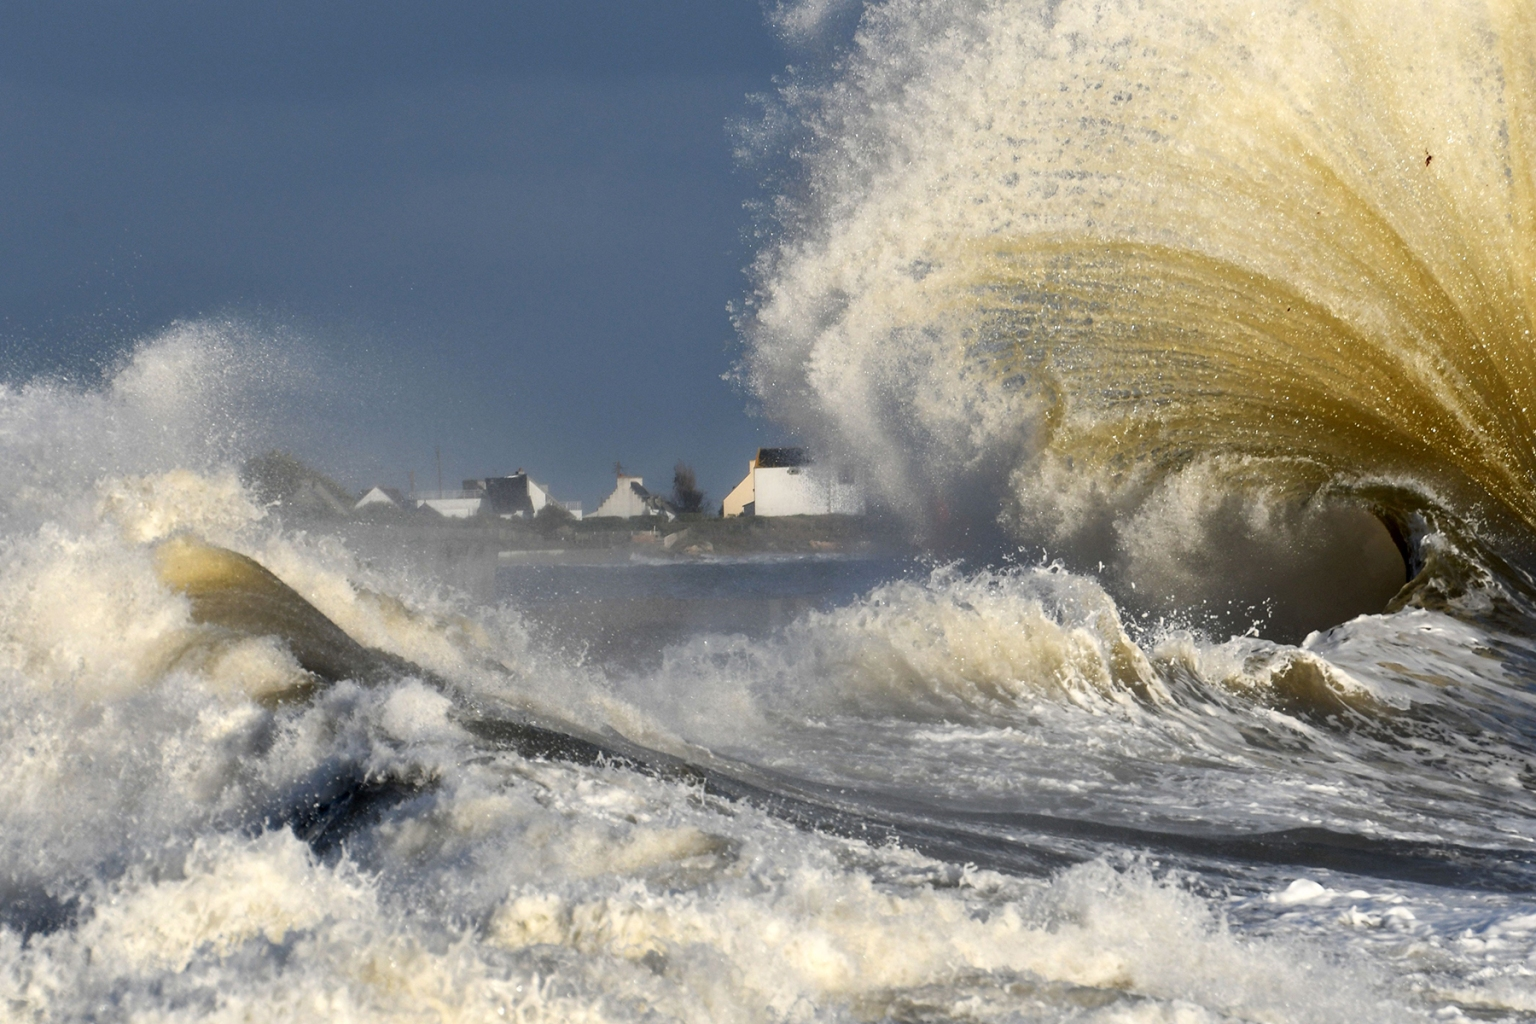 Waves break in the port of Lesconil, western France, on Nov. 7. FRED TANNEAU/AFP/Getty Images